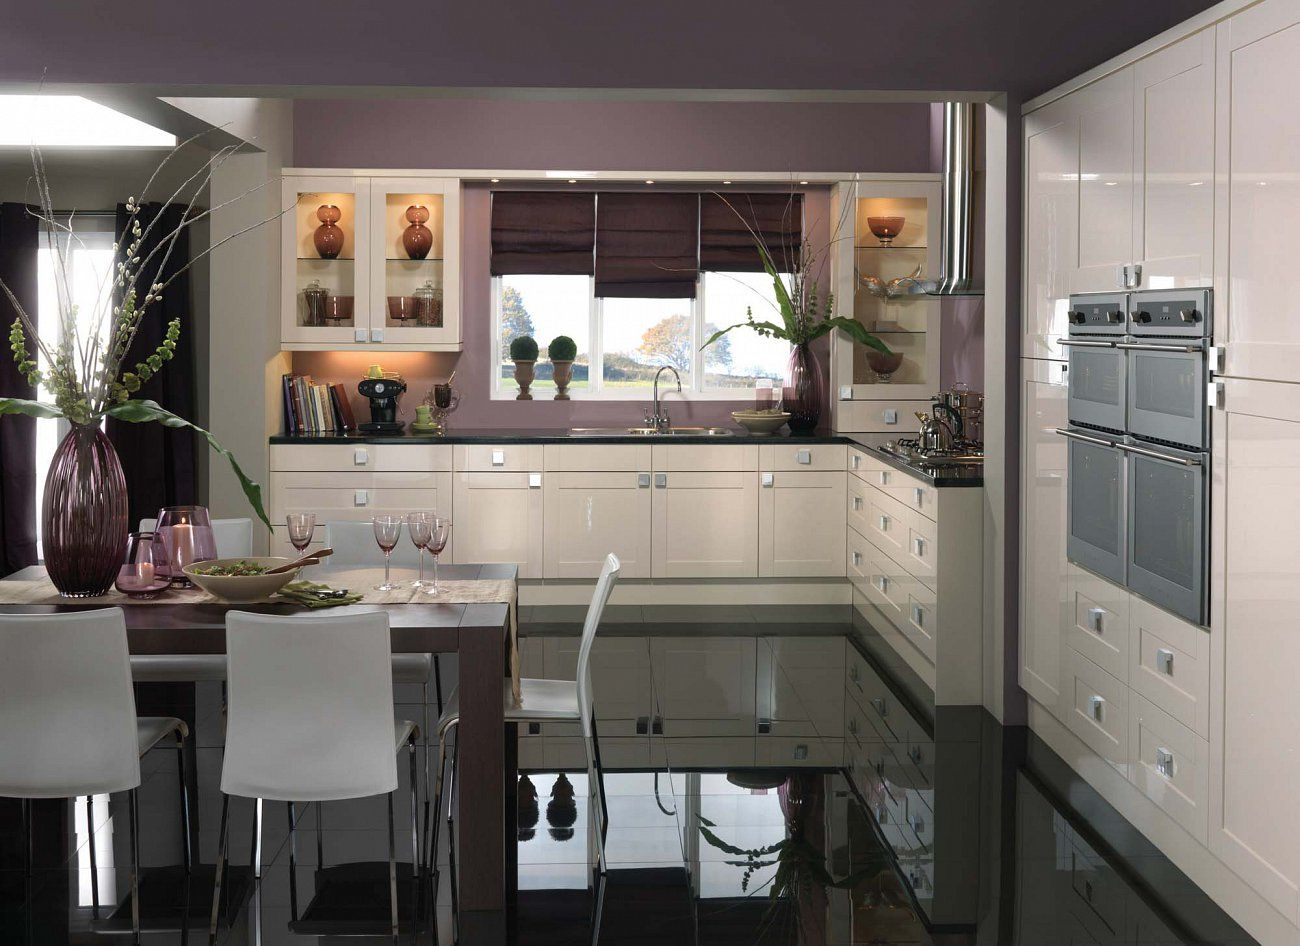 Kitchen Design Gallery  Town Kitchens  For The Home  Pinterest Interesting Gallery Kitchen Design Design Decoration